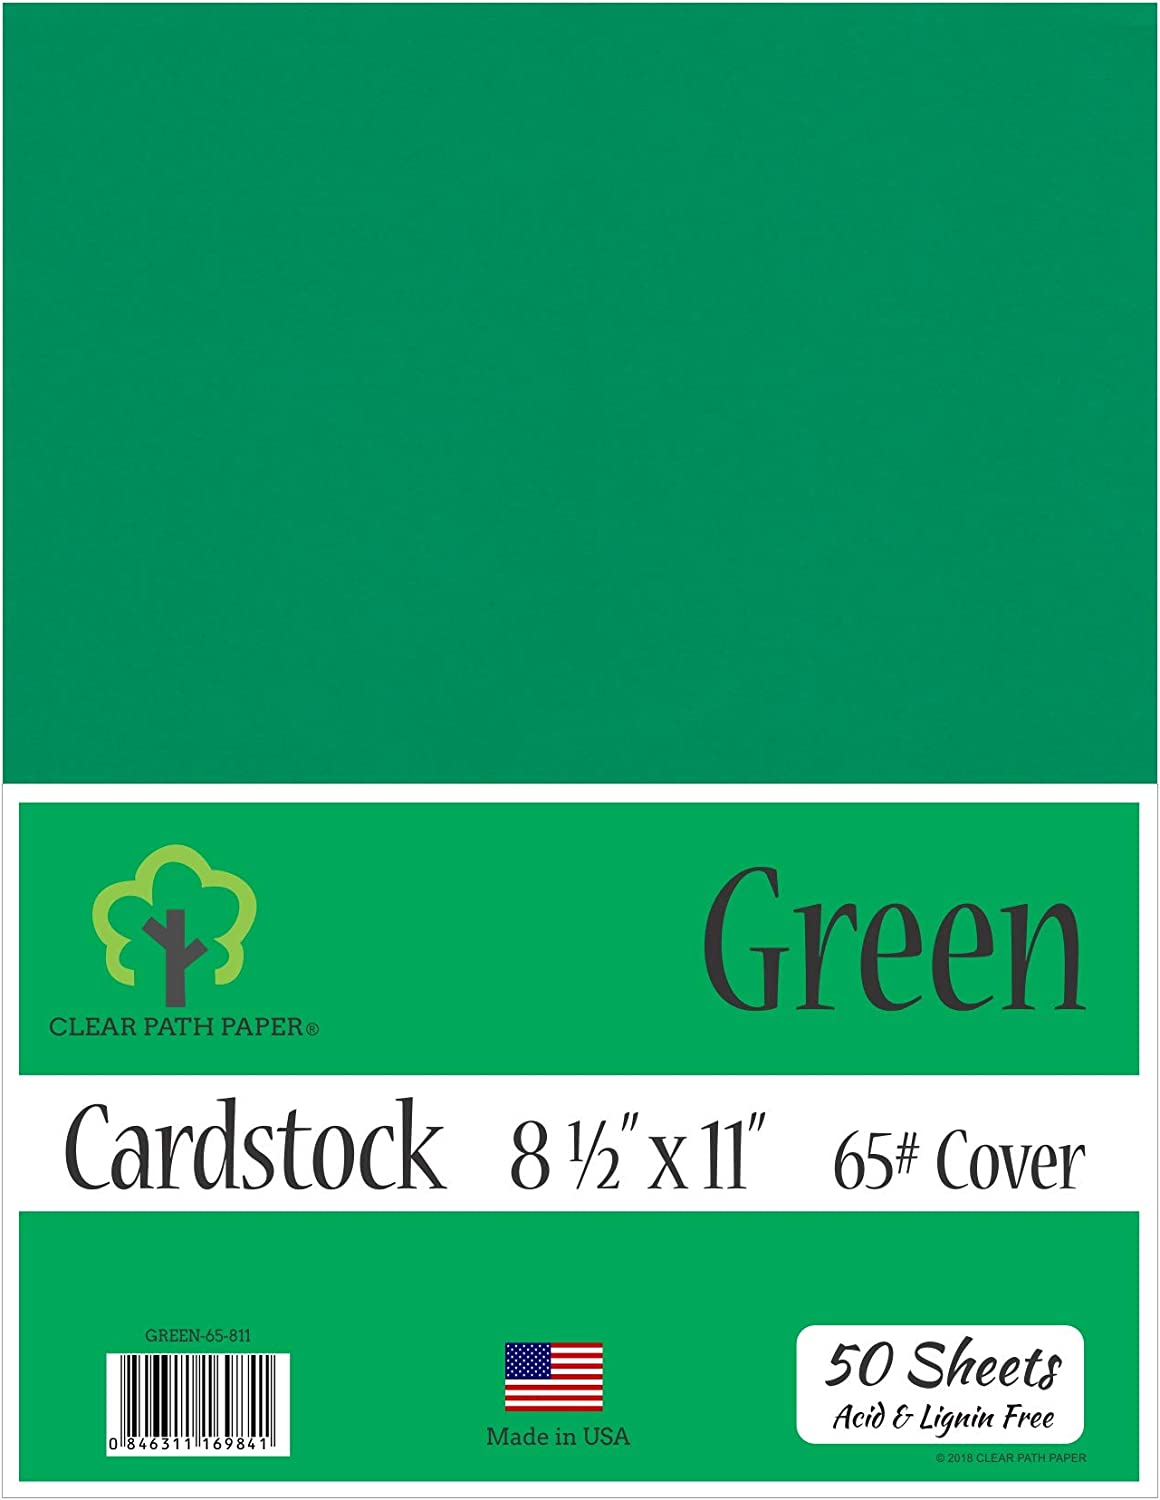 8.5 x 11 inch Spearmint Green Cardstock 50 Sheets 65Lb Cover